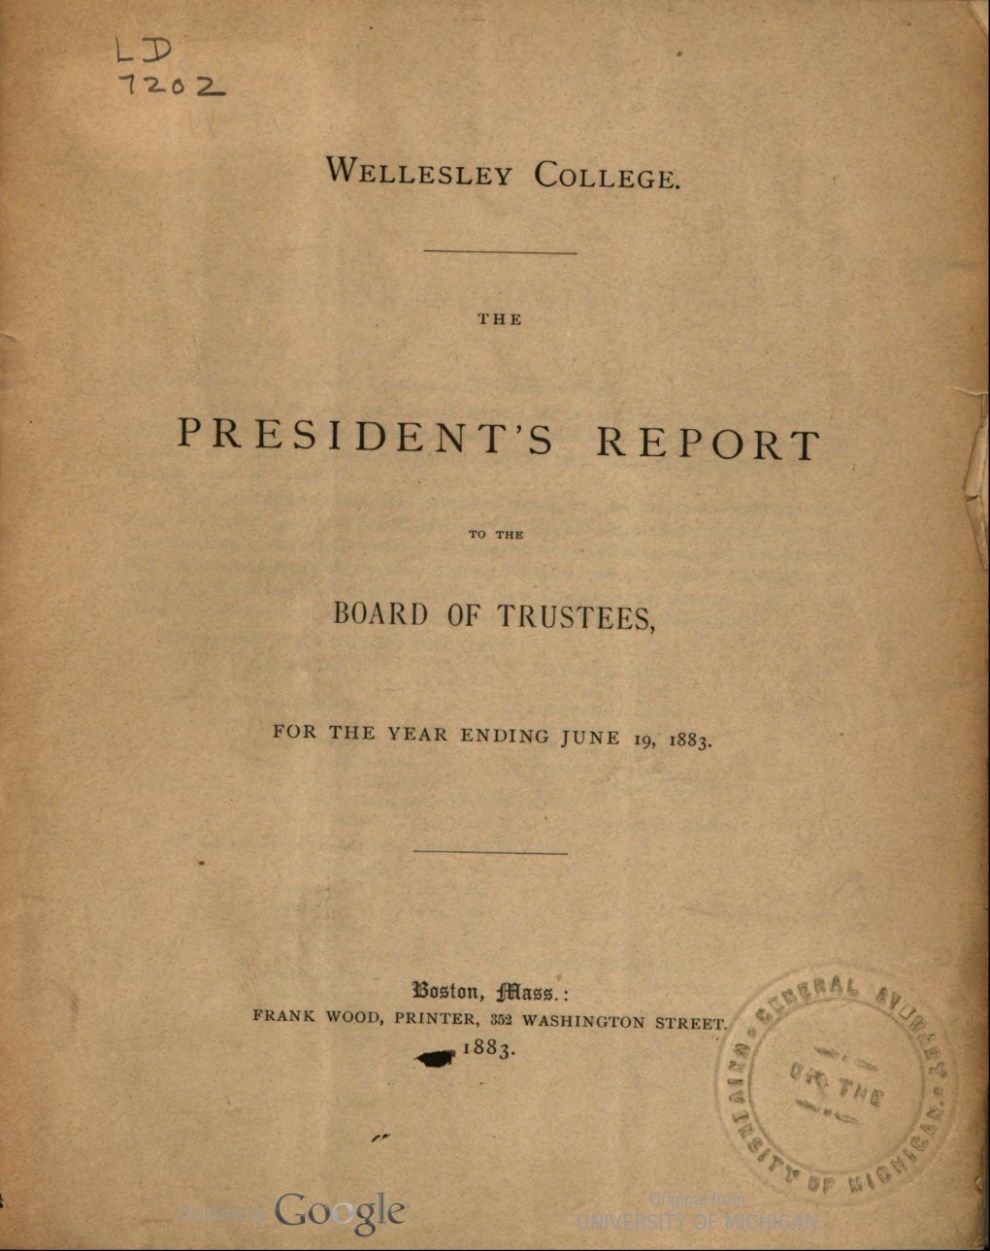 """""""Wellesley College. The President's Report to the Board of Trustees, for the Year Ending June 19, 1883.- Supplementary Report: At the Opening of the College Year, 1883-'84"""" by Alice E. Freeman, Boston, MA, 1883, page 10-11, not illustrated"""